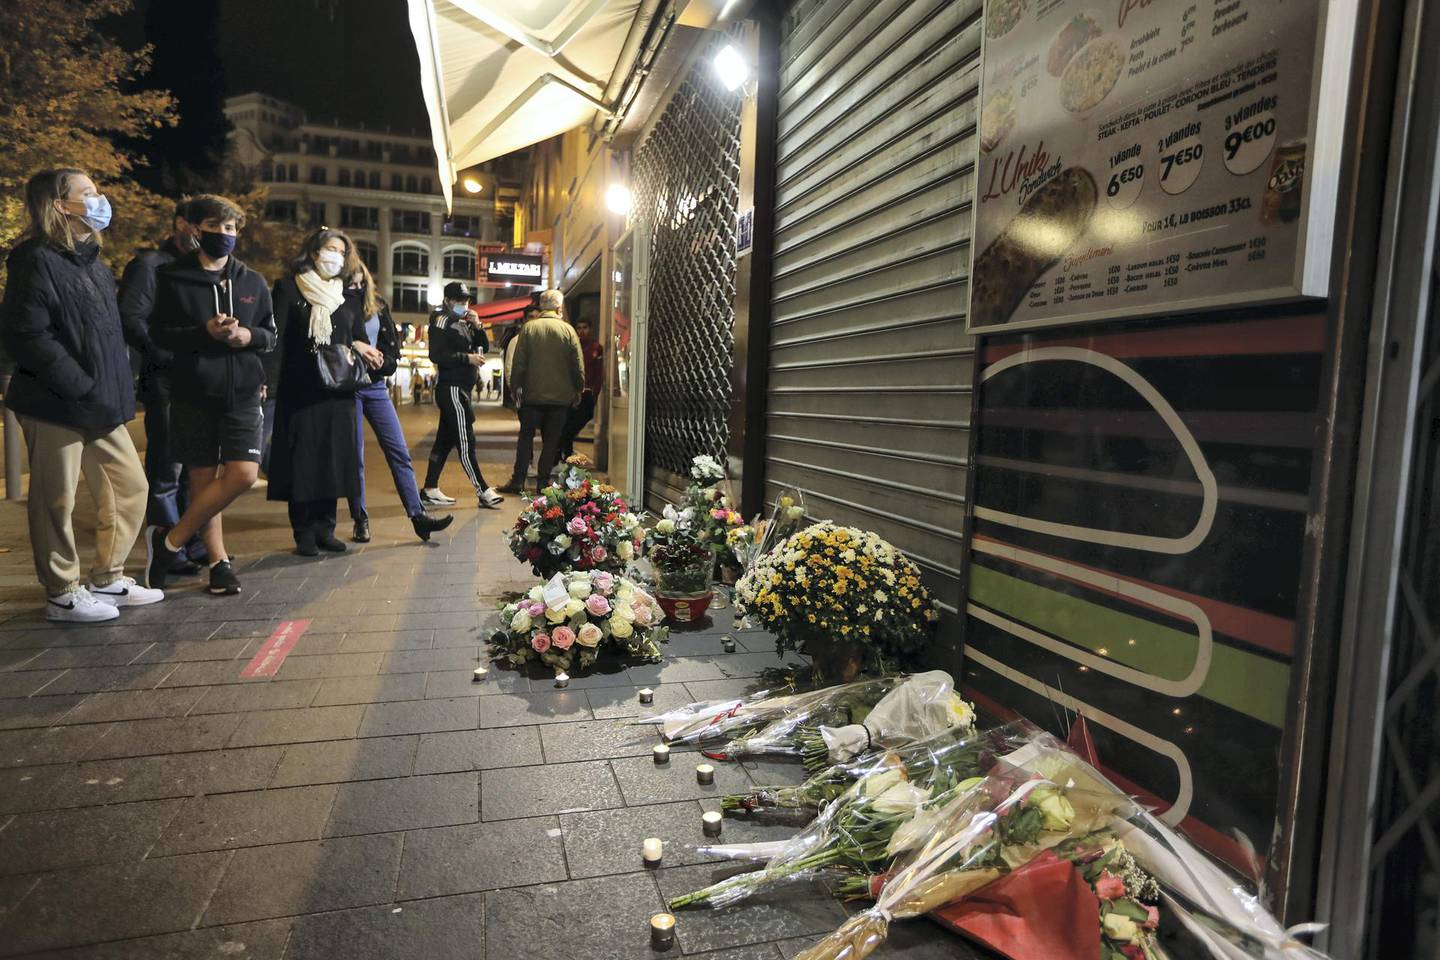 Flowers have been laid outside the restaurant where Brazilian Simone Barreto Silva took refuge after being stabbed several times but died of her wounds there, near Notre-Dame de l'Assomption Basilica in Nice on October 31, 2020, two days after a knife attacker killed three people (including Barreto Silva), cutting the throat of two, inside the church of the French Riviera city, and police arrest a young Tunisian migrant from Sfax who arrived in Europe only last month, according to French prosecutors. - The killings came two weeks after a French teacher was decapitated outside his school north of Paris by a suspected Islamist extremist. The teacher had shown his pupils cartoons of the Prophet Mohammed during a lesson on freedom of speech. (Photo by Valery HACHE / AFP)